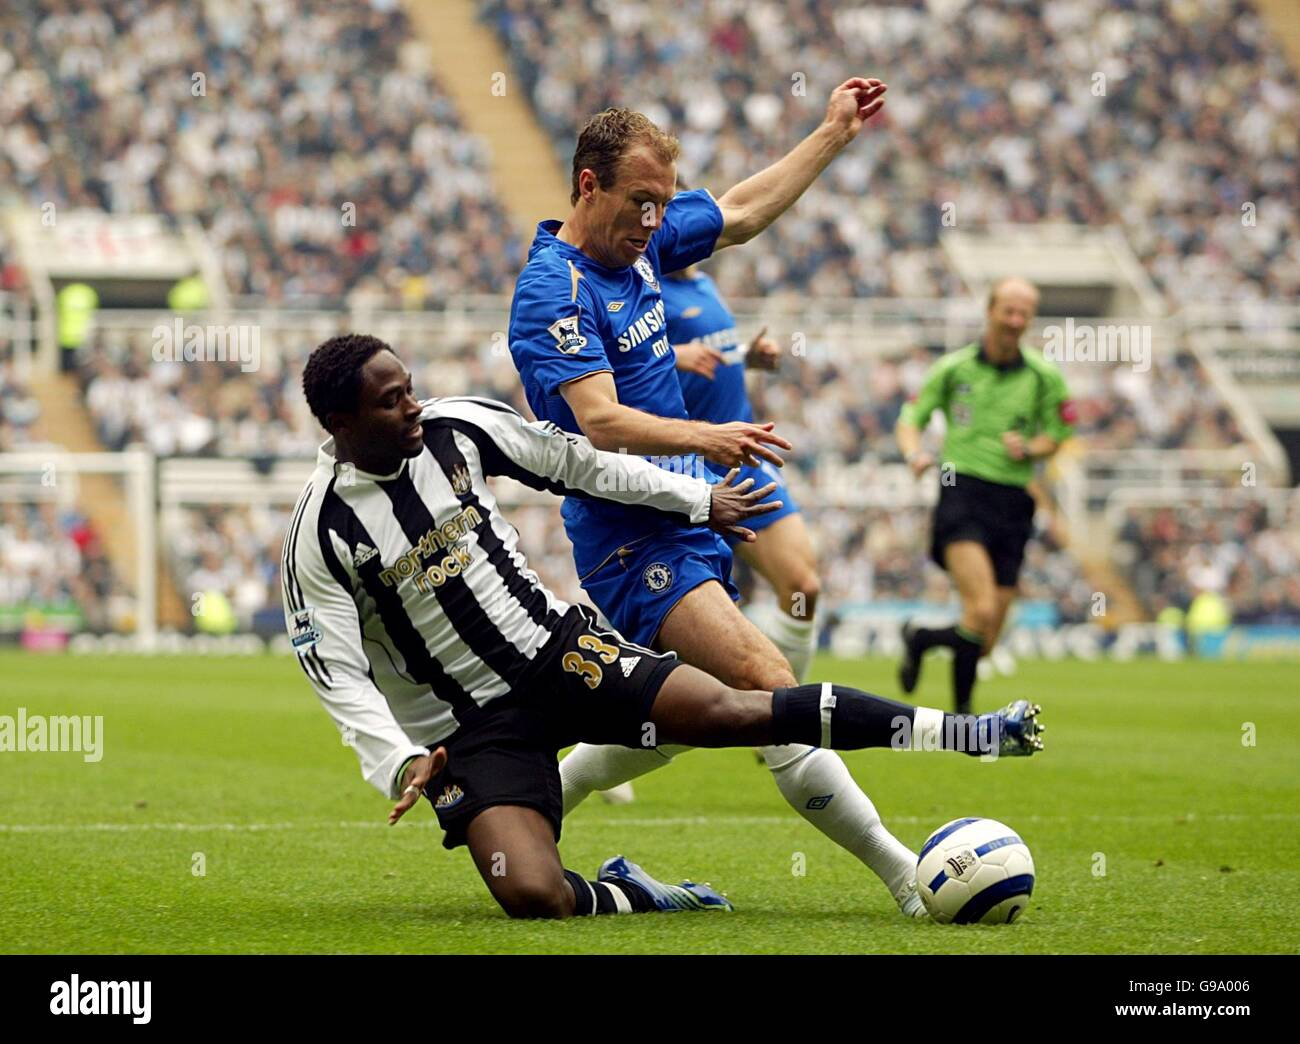 Soccer - FA Barclays Premiership - Newcastle United v Chelsea - St James Park - Stock Image